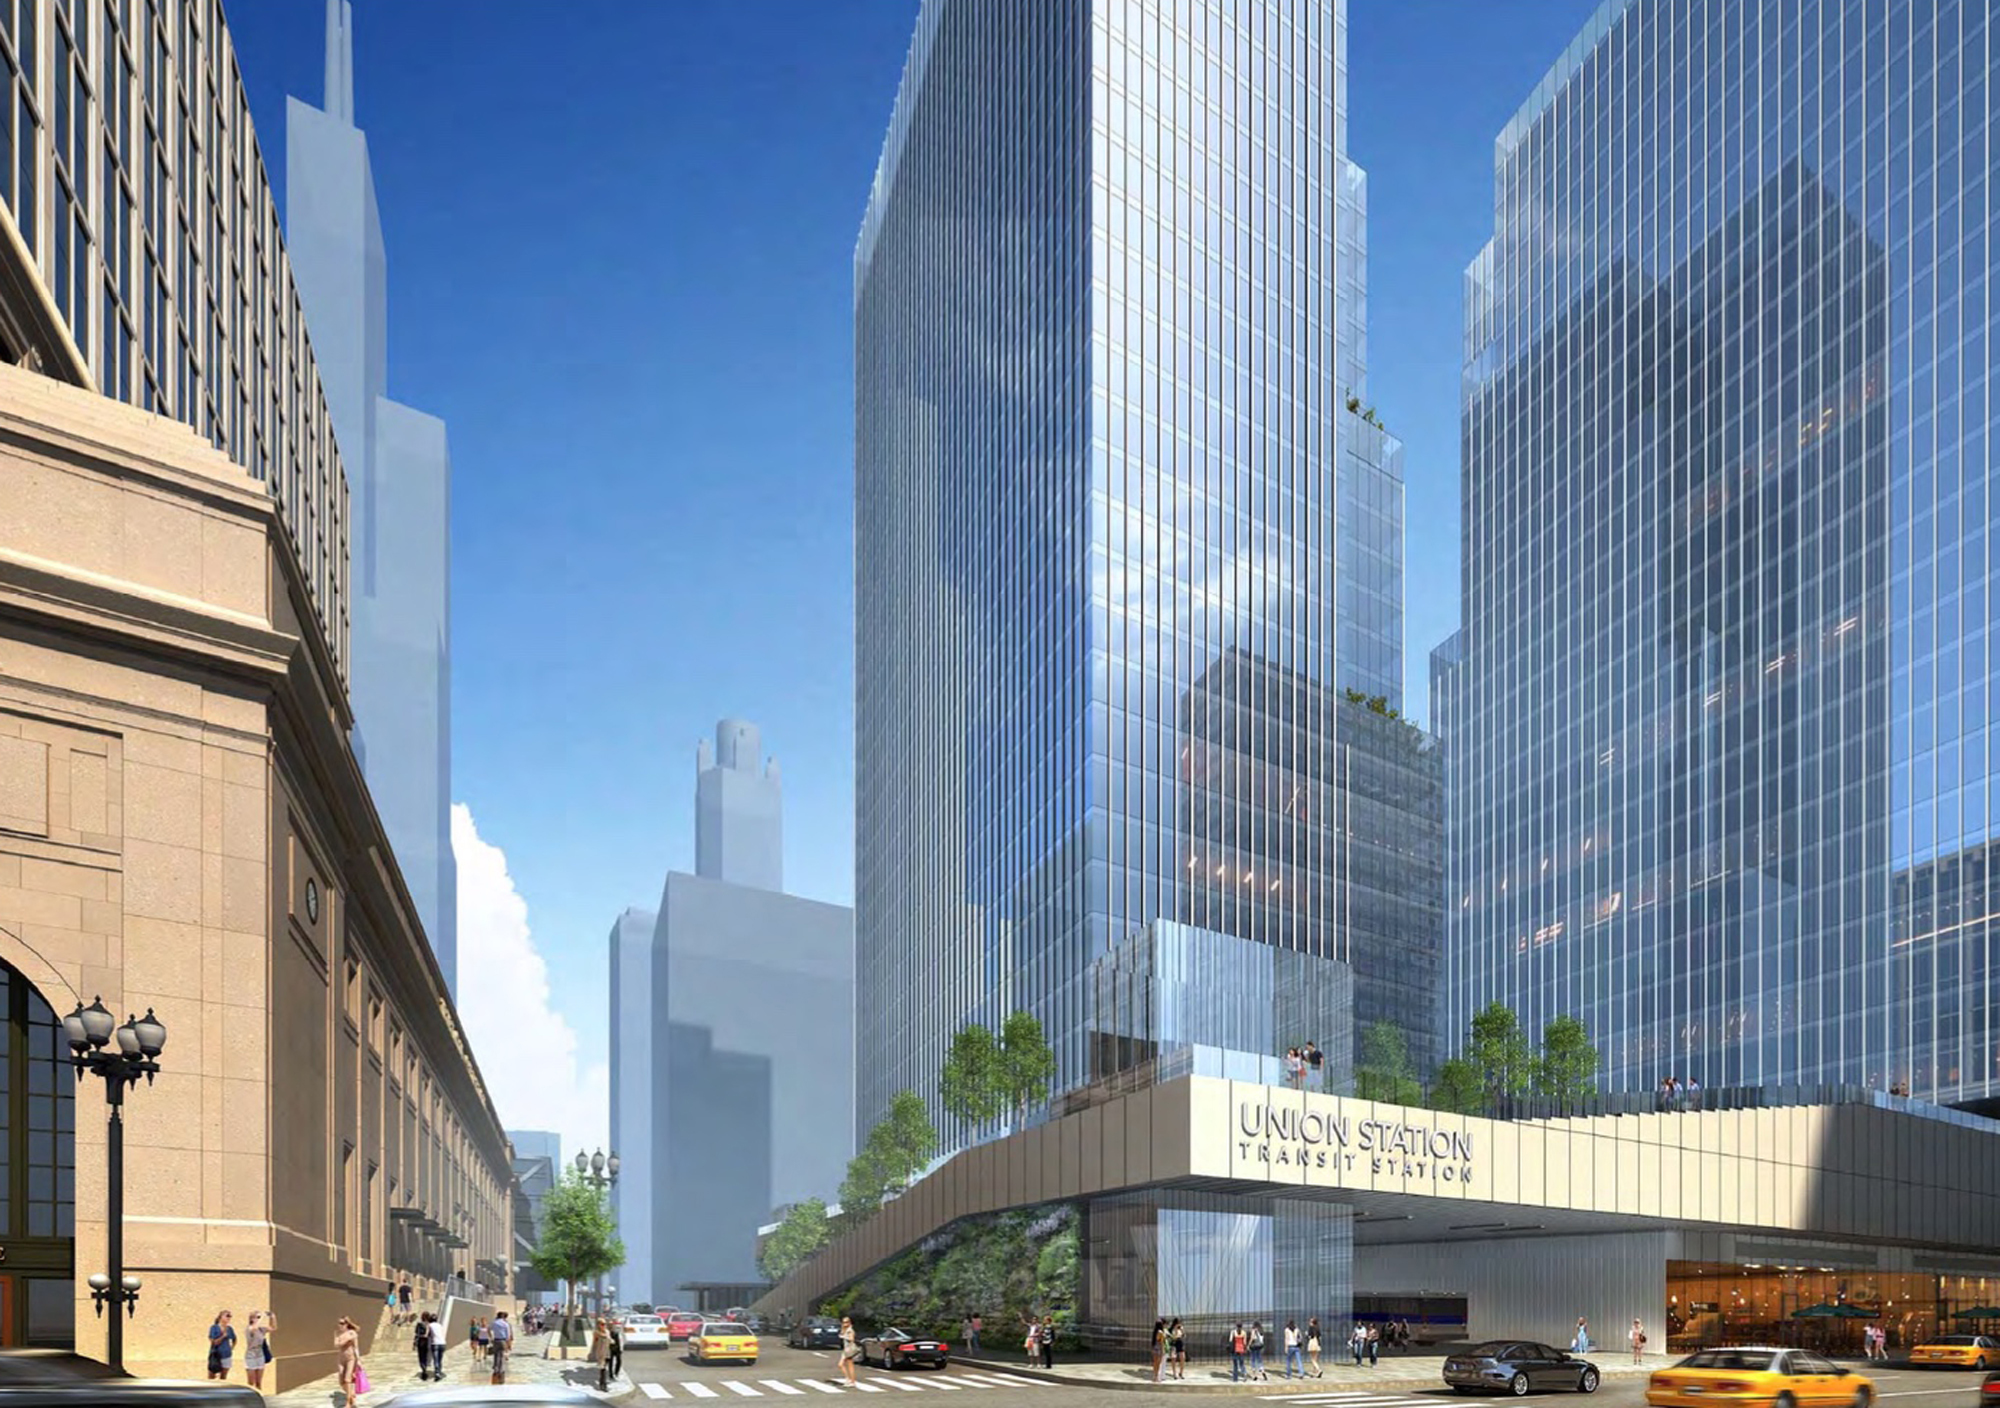 This artist rendering shows a view of the proposed changes to Union Station in Chicago. (Goettsch Partners/Riverside Investment & Development via AP)